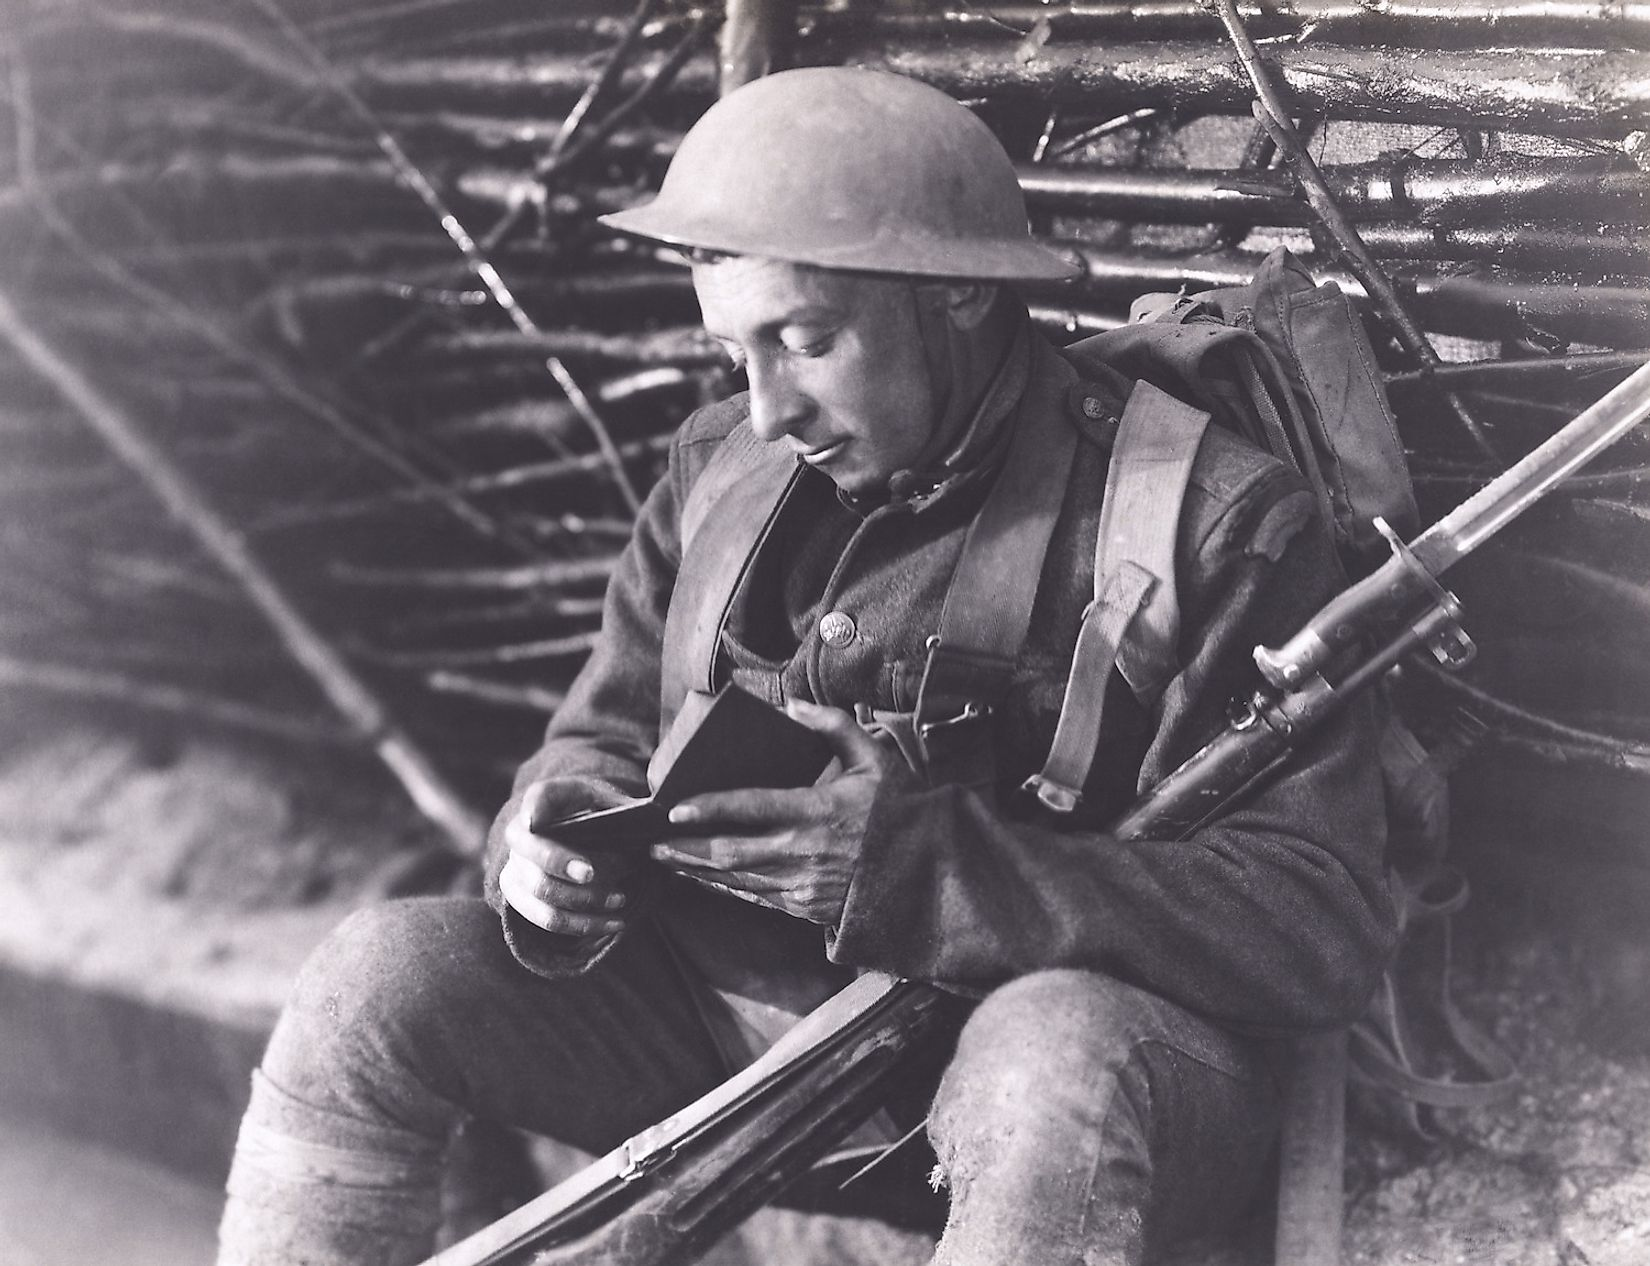 A World War soldier reading a book while posted at the warfront. Image credit: Everett Collection/Shutterstock.com